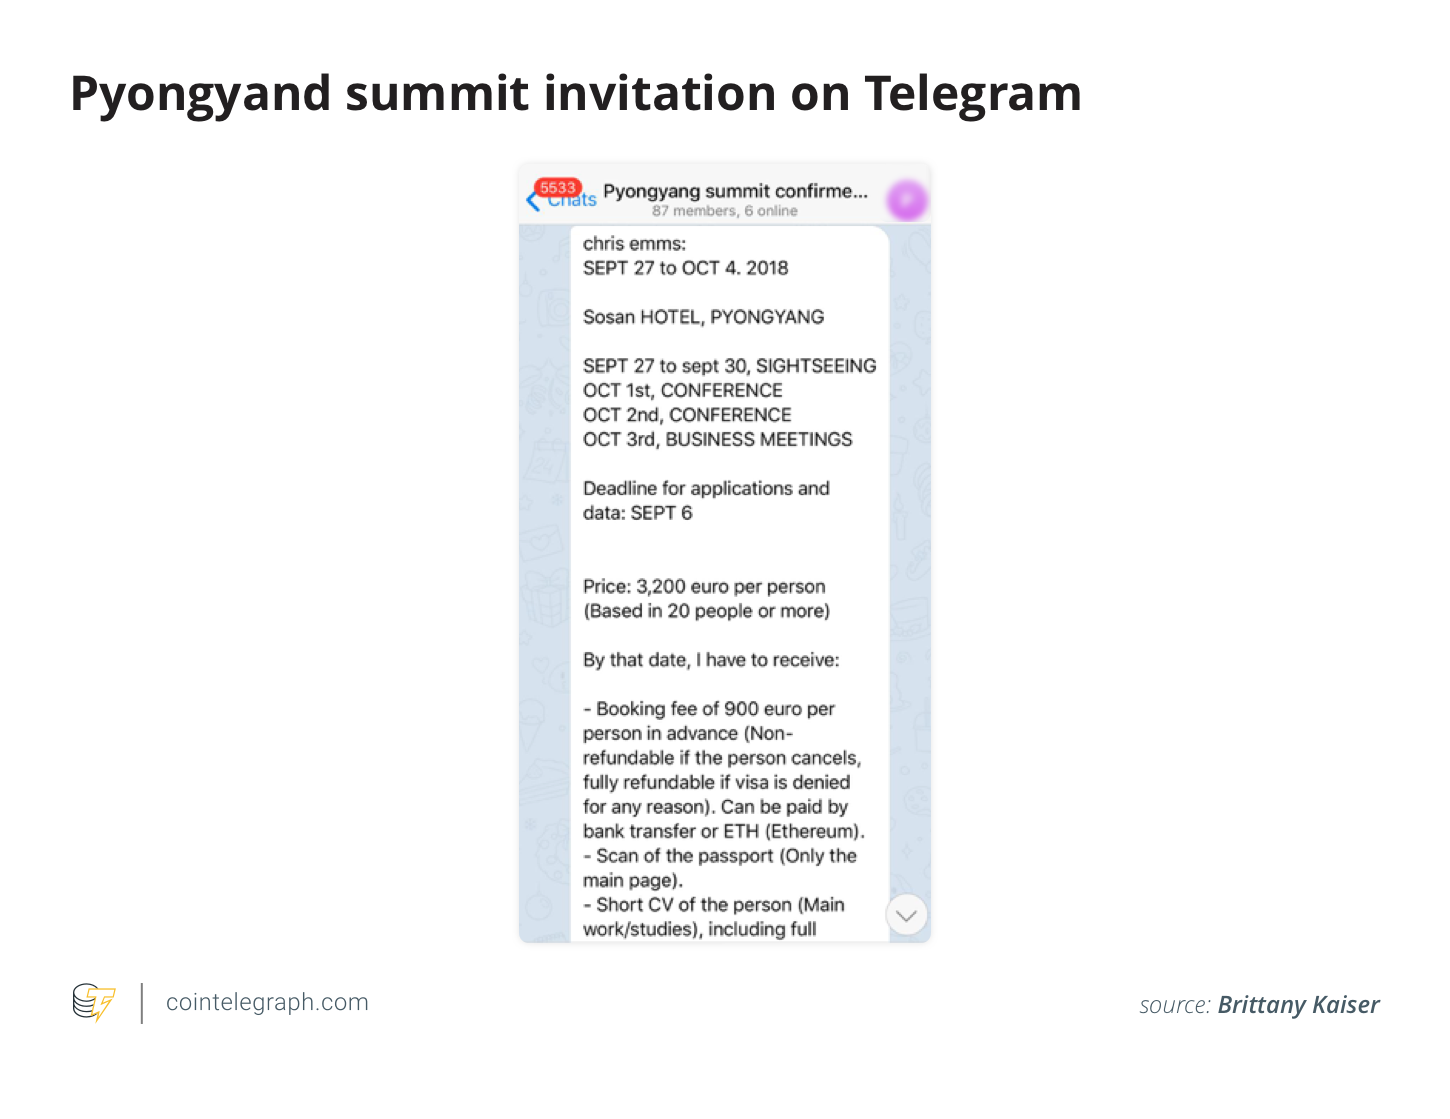 Pyongyand summit invitation on Telegram